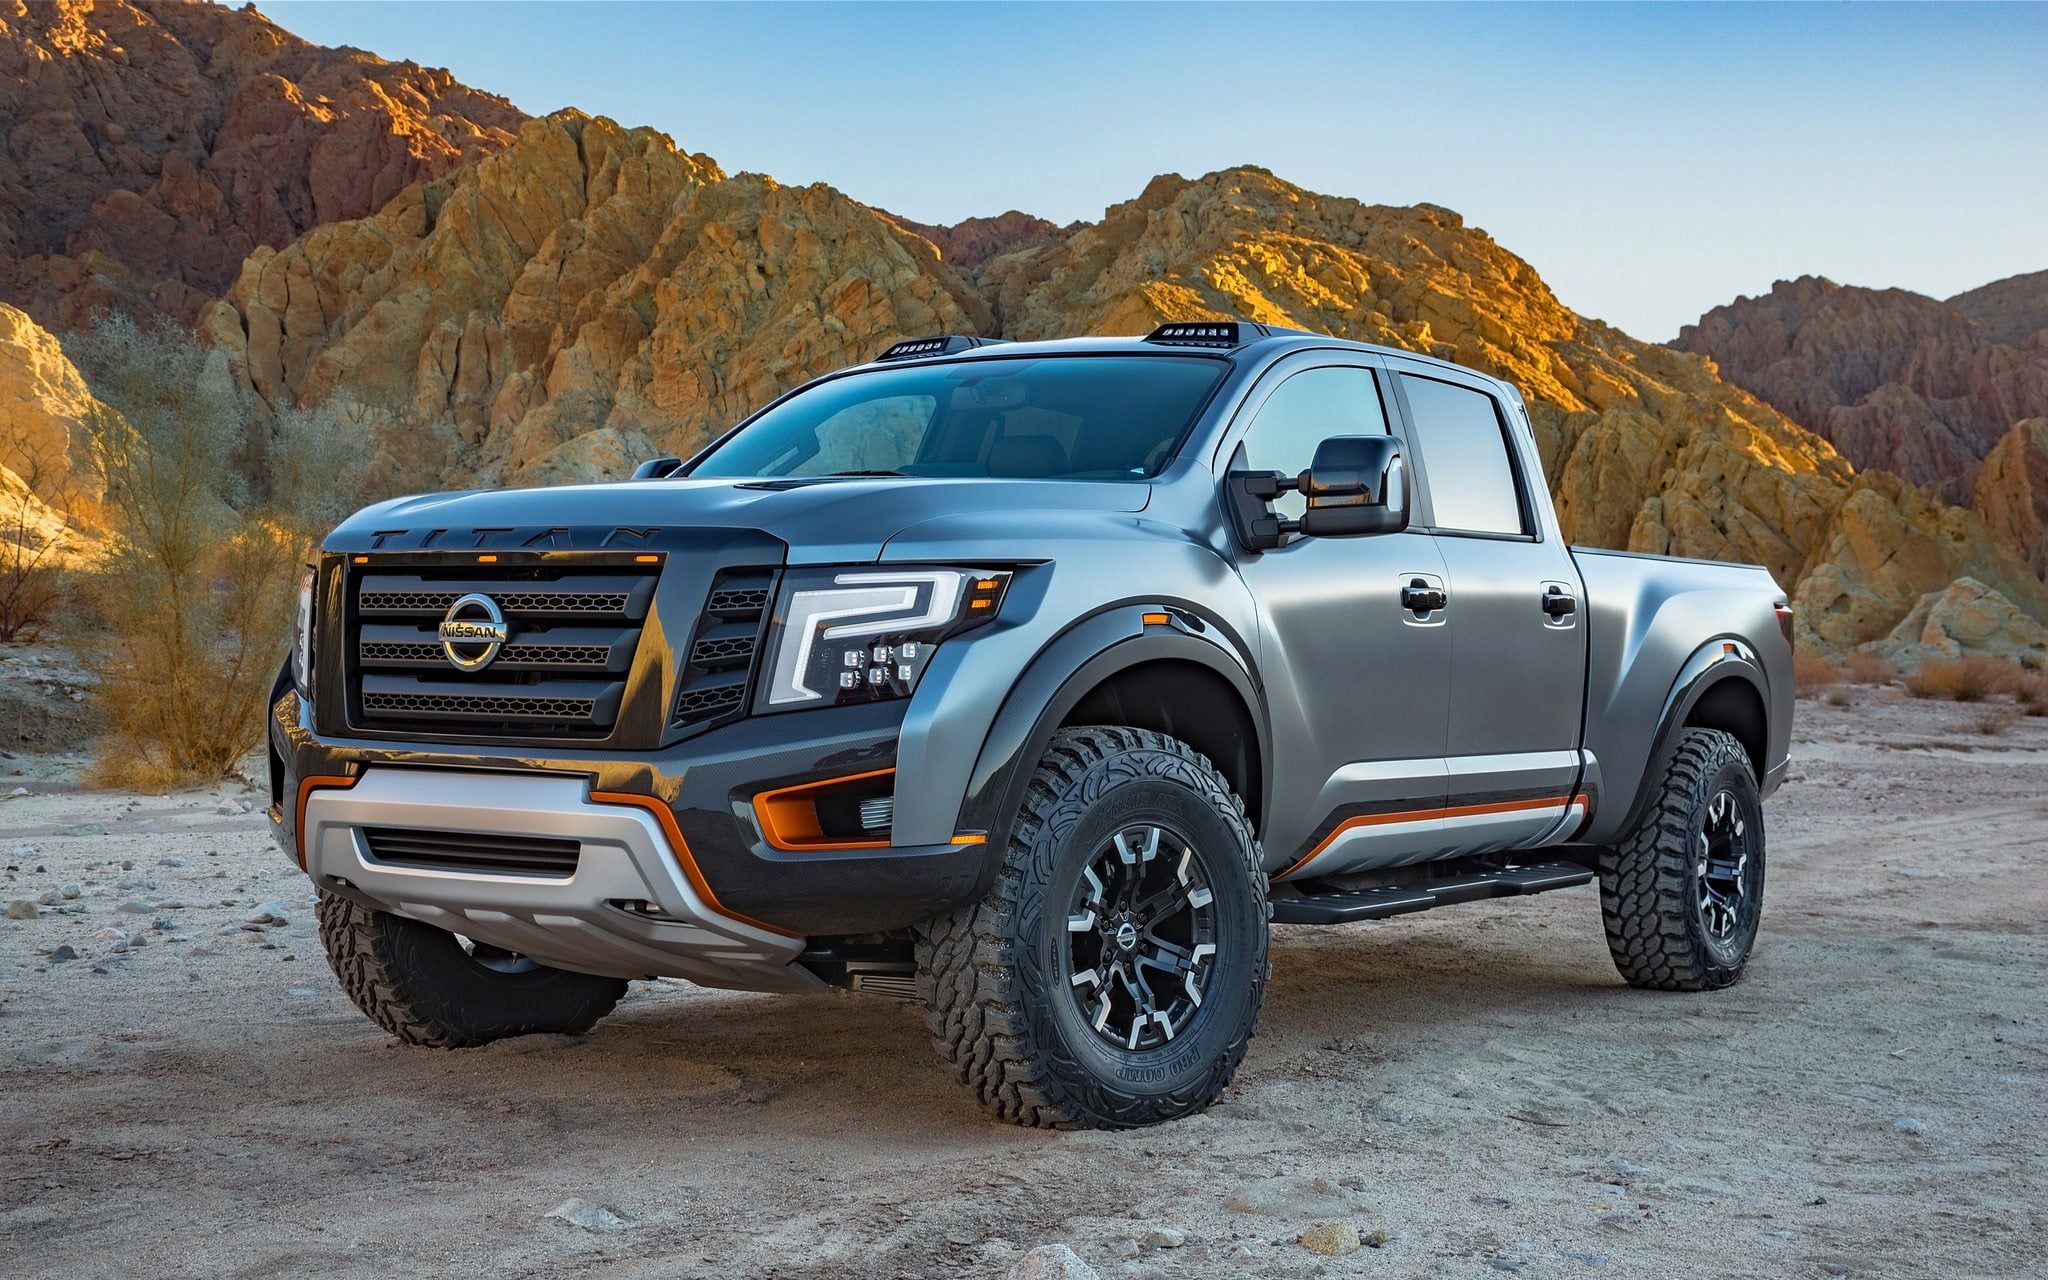 Toyota Cars Wallpapers Free Download 2016 Nissan Titan Warrior Wallpapers Hd Free Download